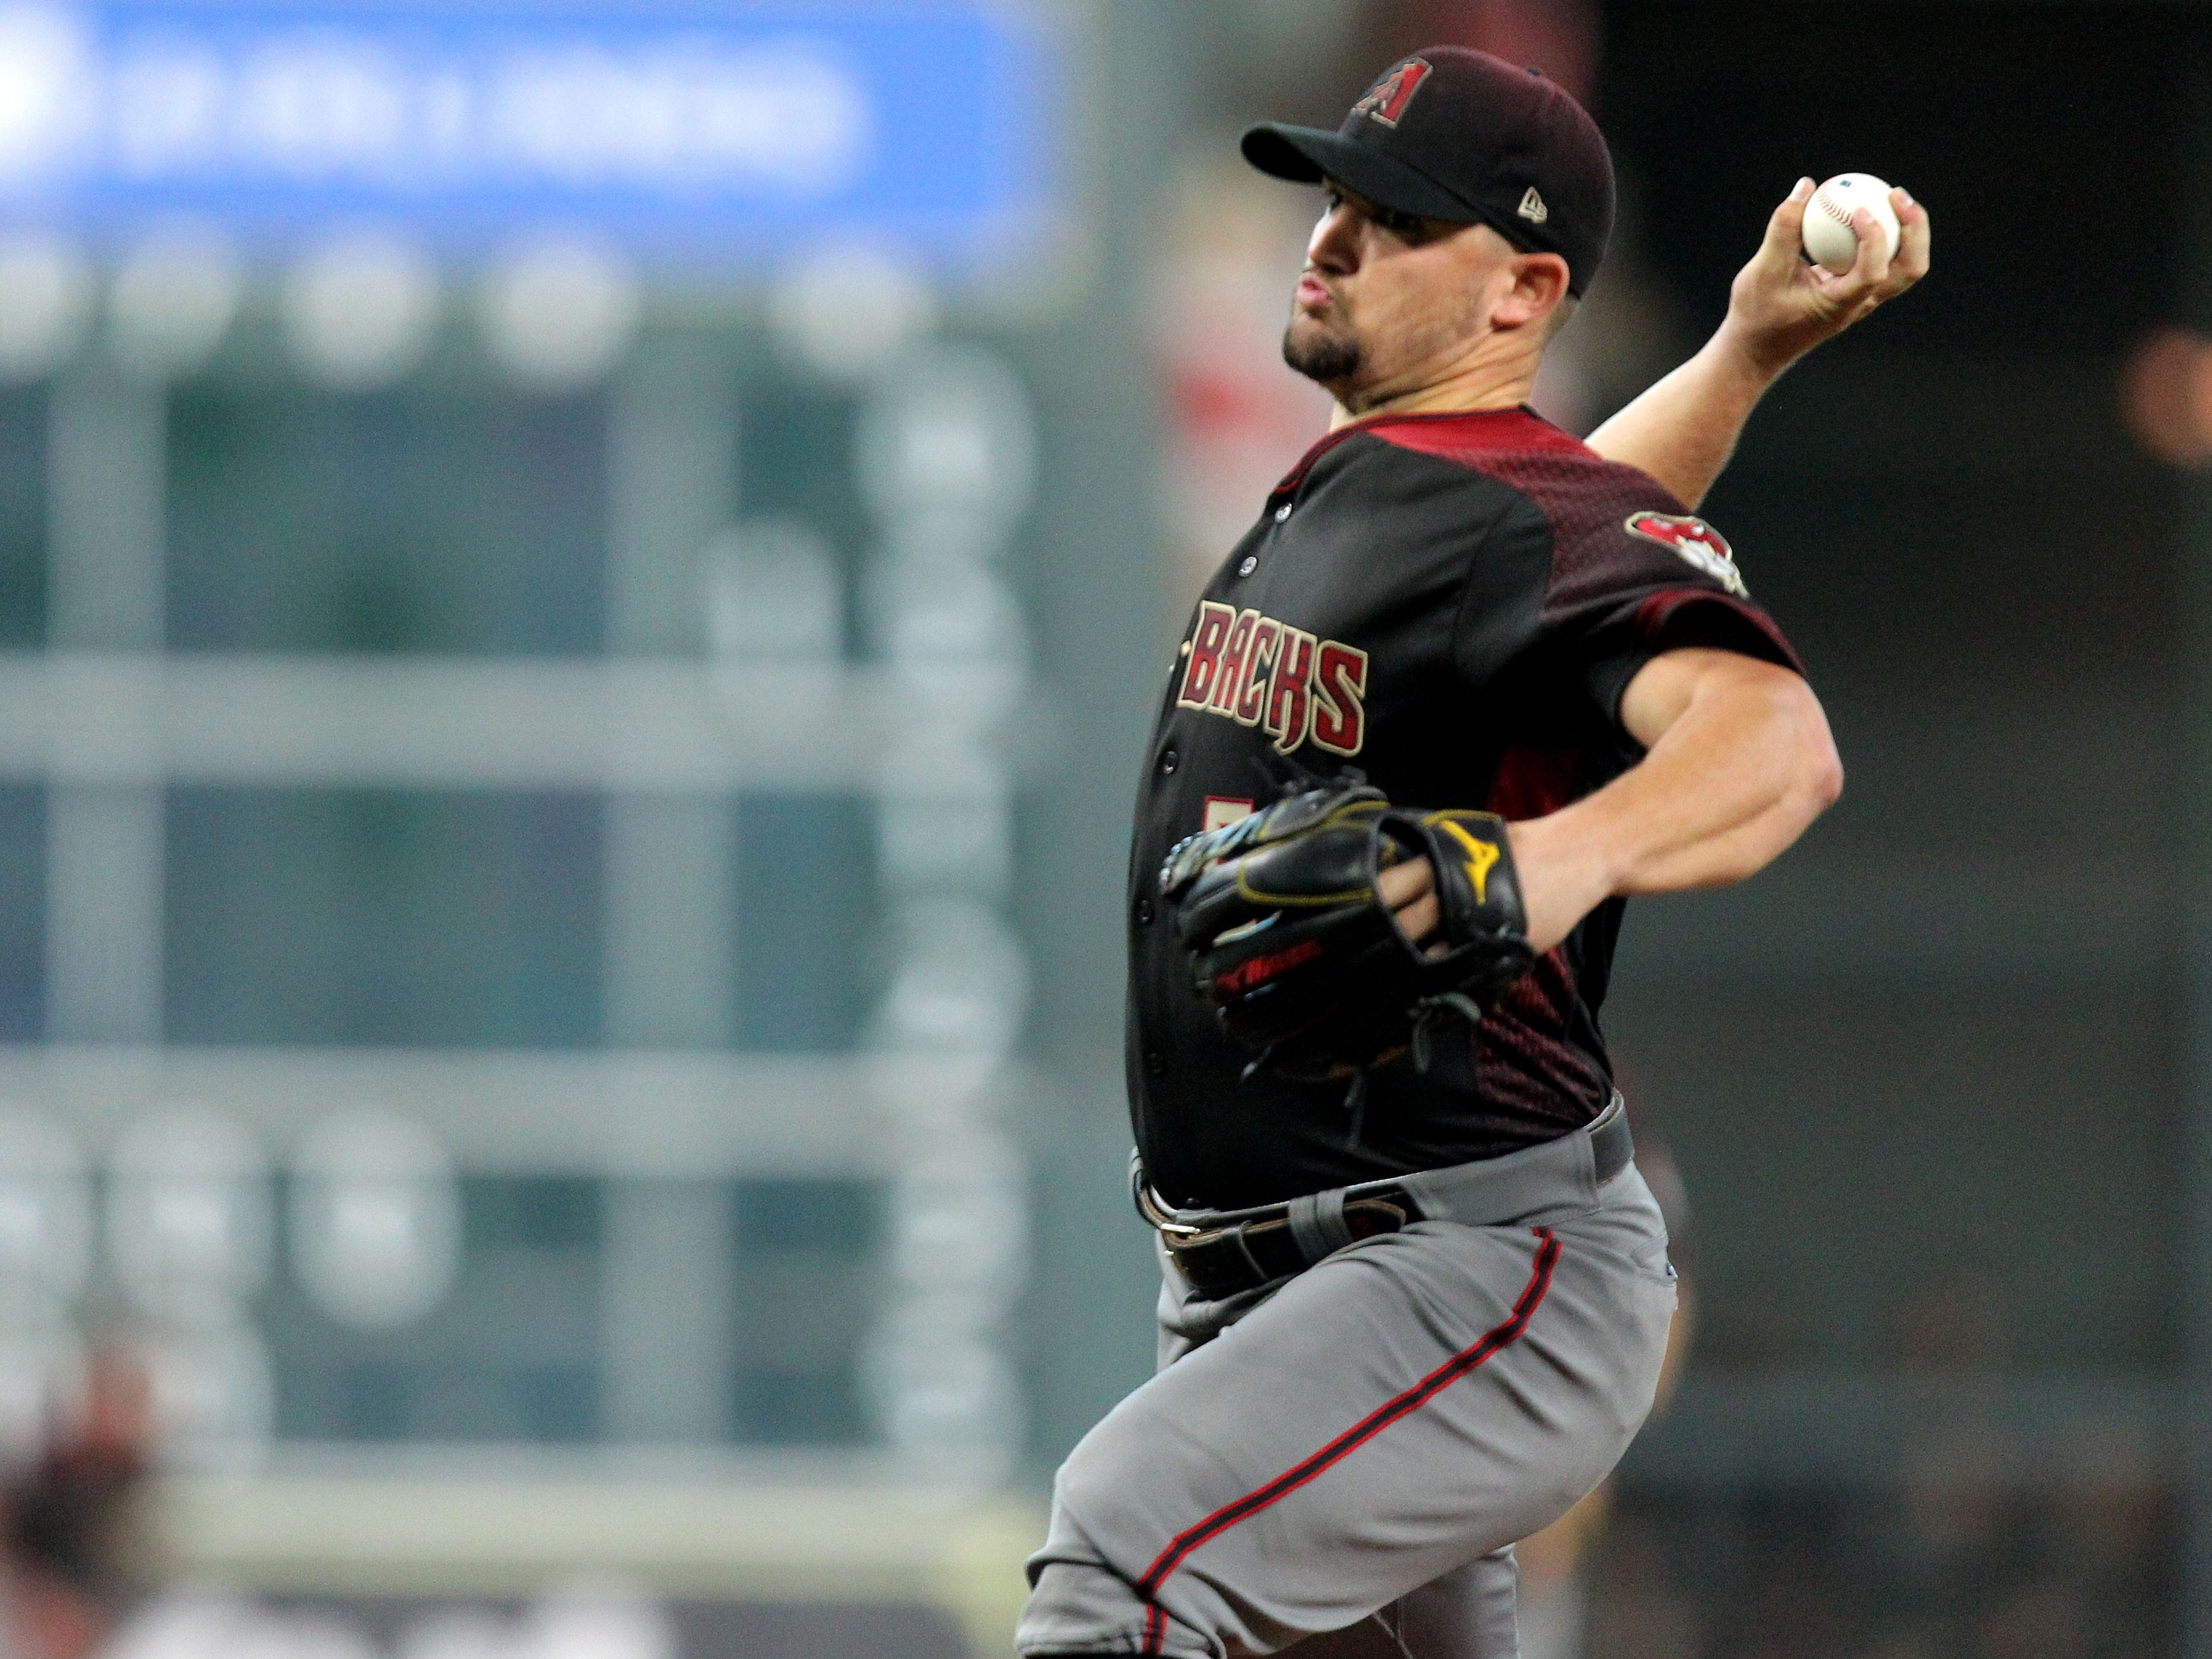 Sep 15, 2018; Houston, TX, USA; Arizona Diamondbacks starting pitcher Zack Godley (52) delivers a pitch against the Houston Astros during the first inning at Minute Maid Park. Mandatory Credit: Erik Williams-USA TODAY Sports